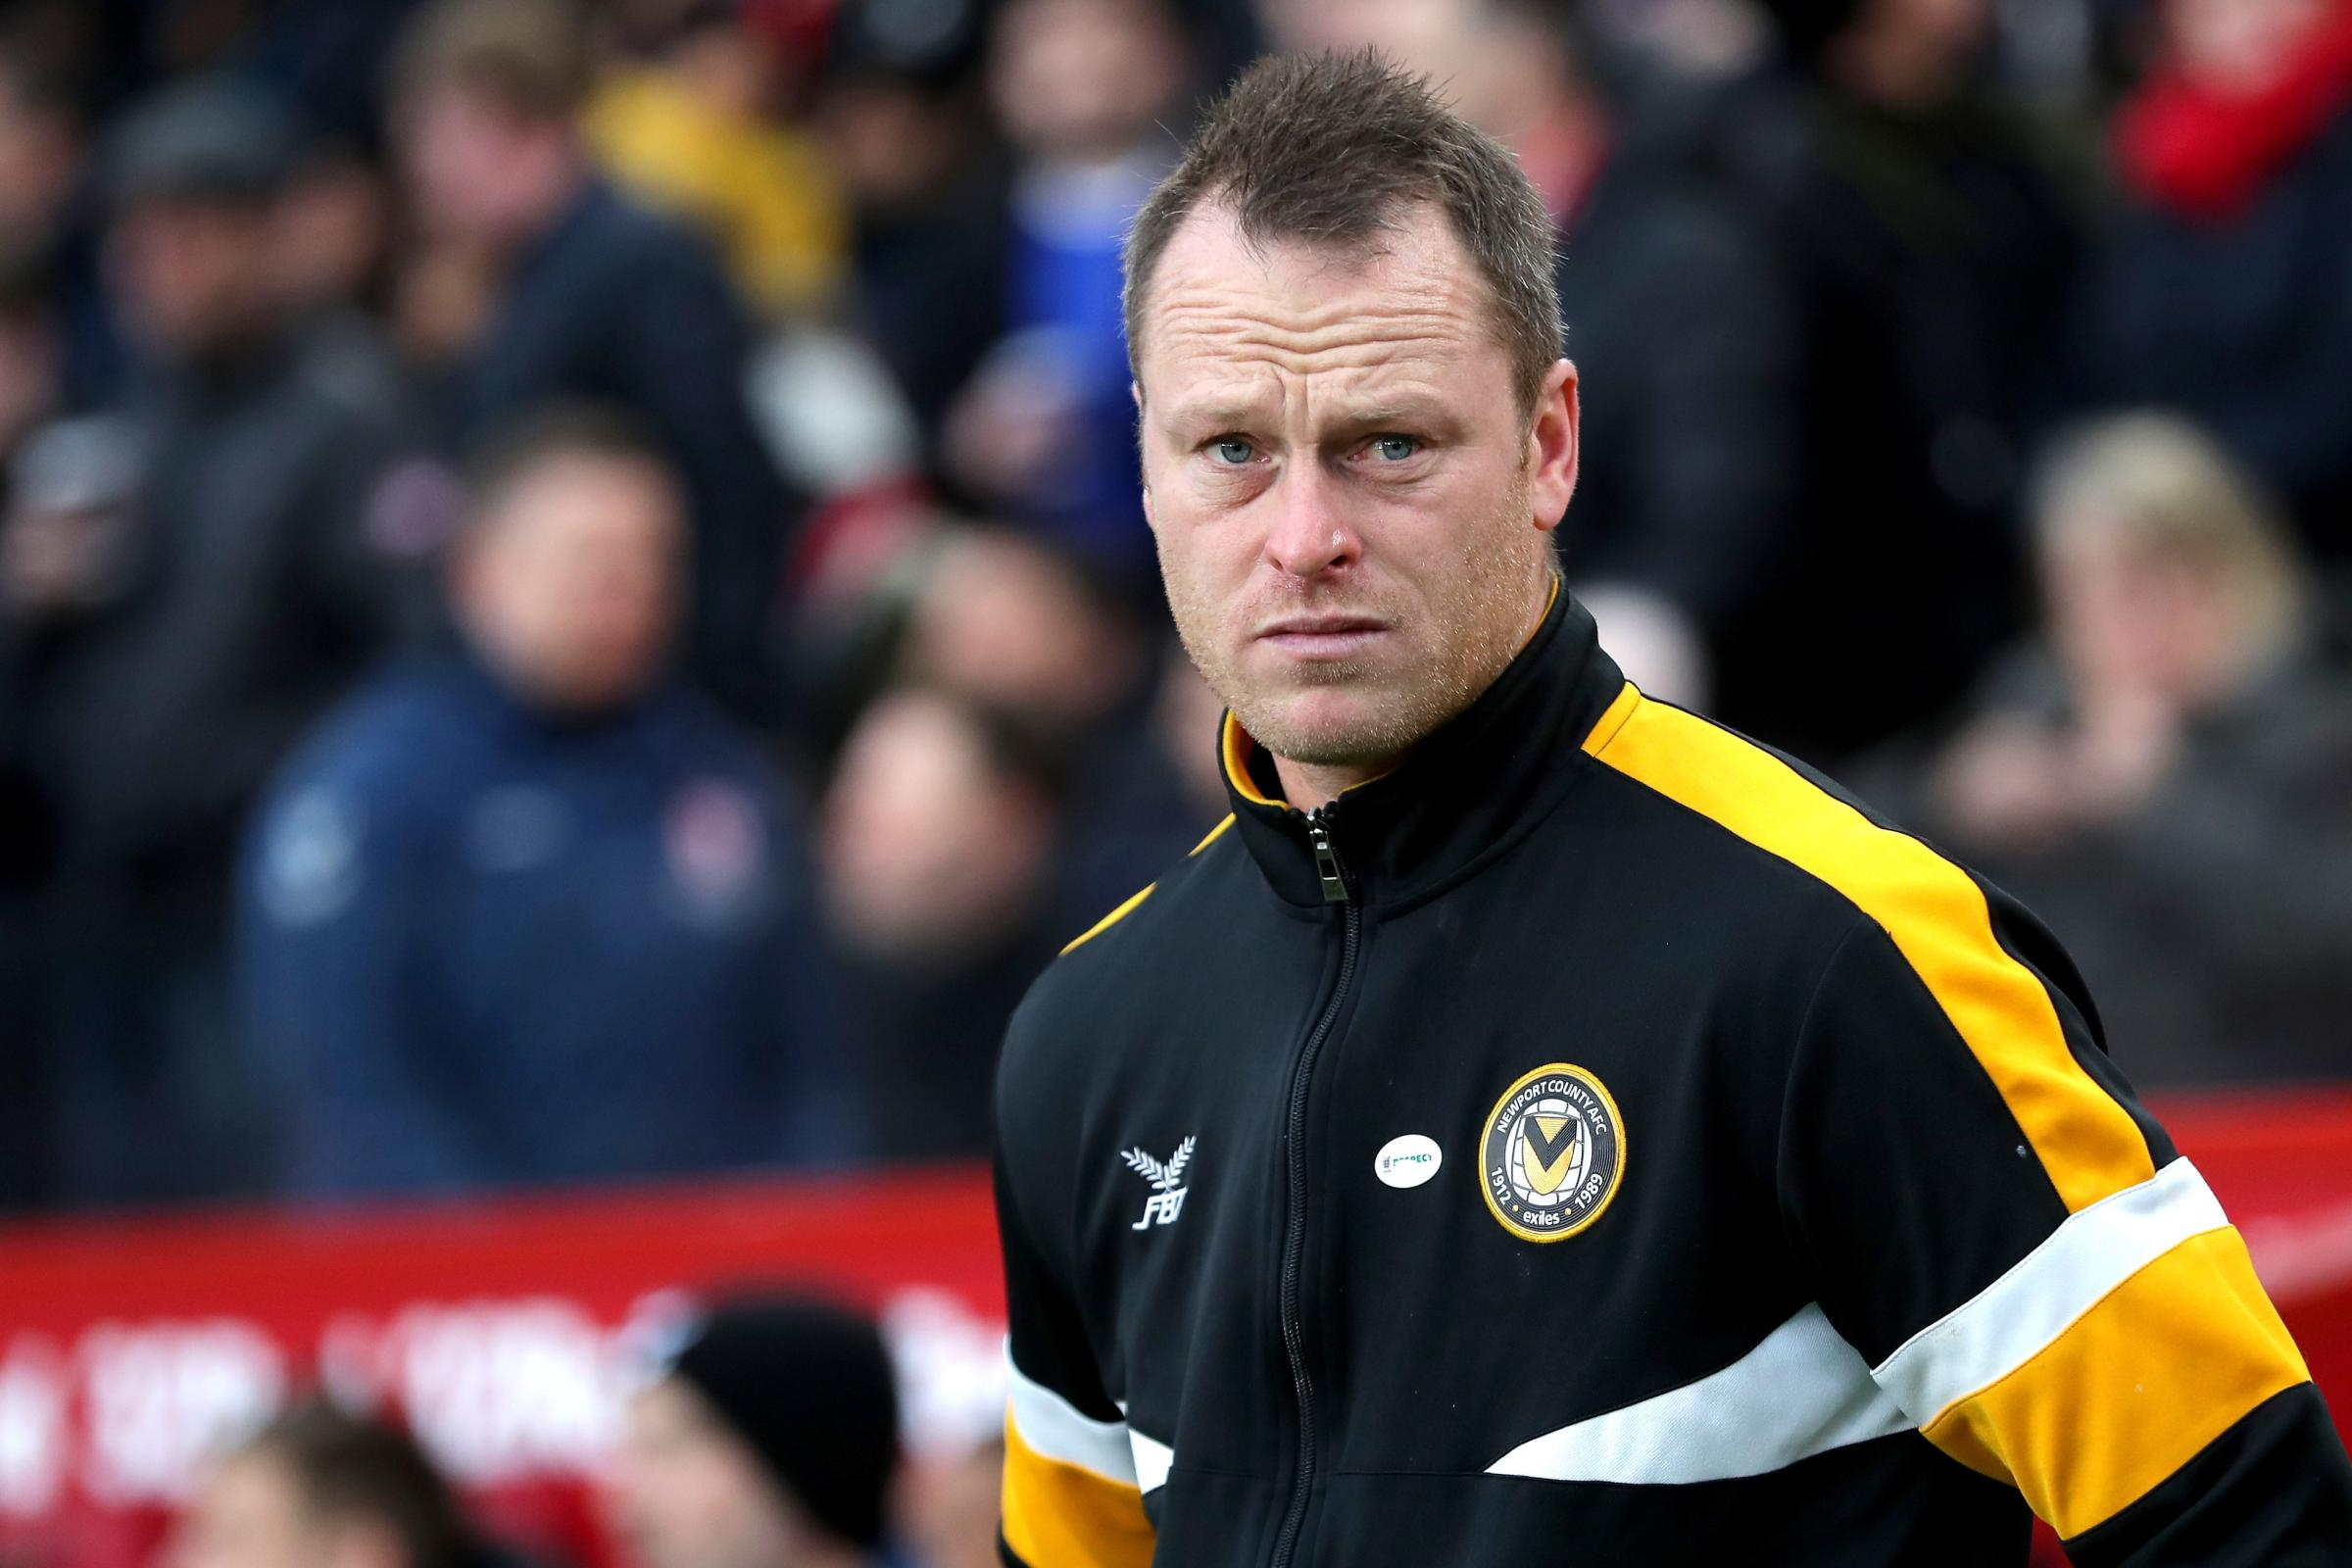 Newport manager Michael Flynn believes the heavy Rodney Parade pitch will help them in their FA Cup tie against Manchester City